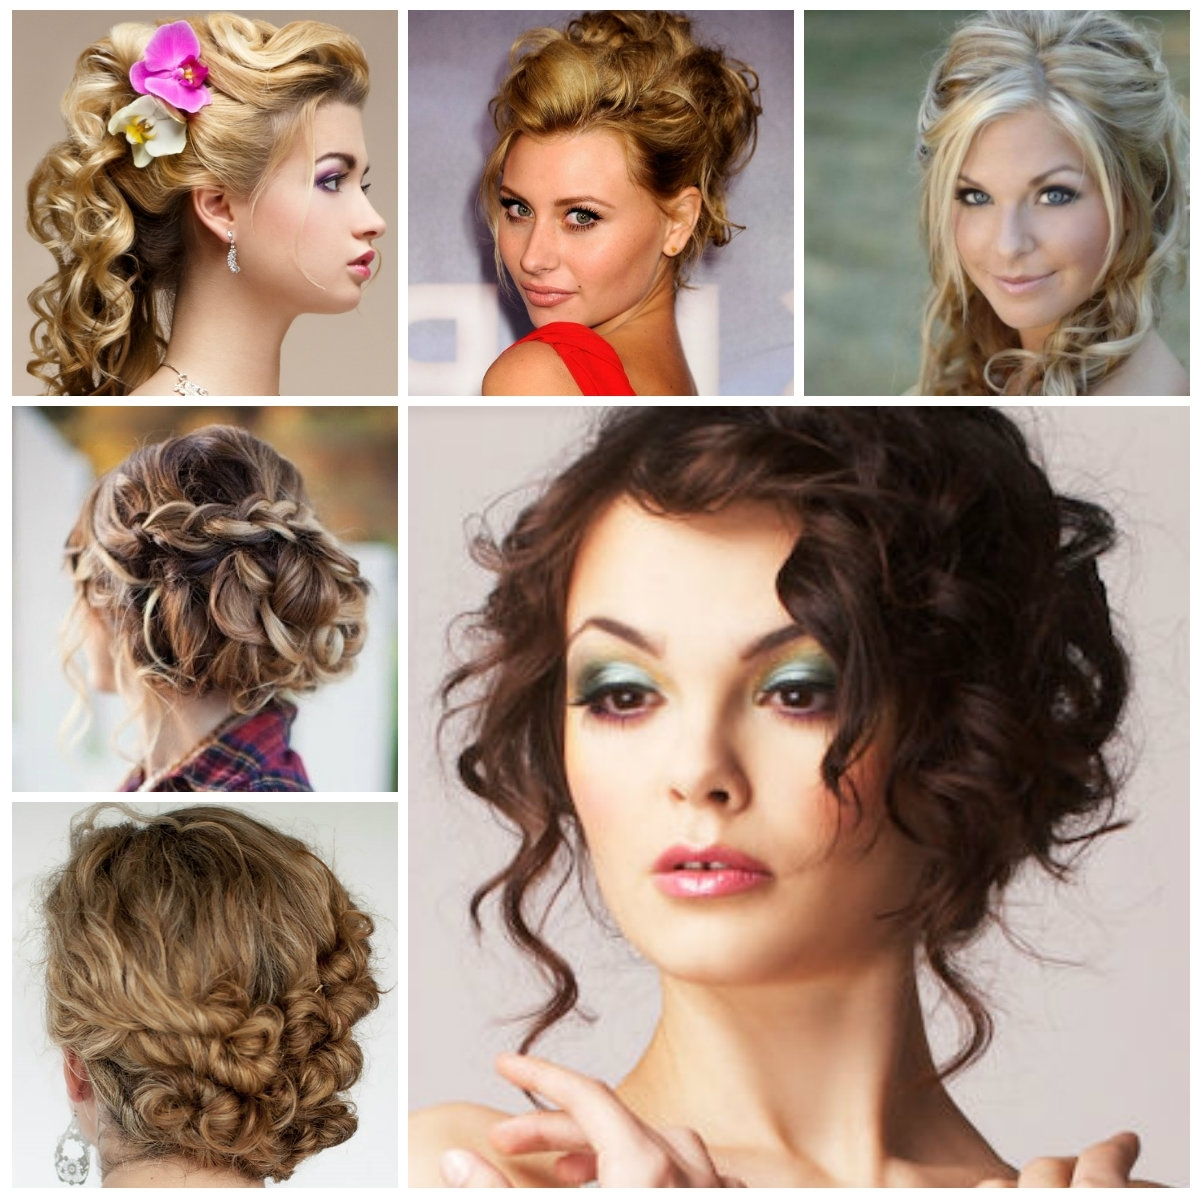 Hairstyles Updo Pretty Curly Updo Hairstyles For Haircuts Hairstyles In Pretty Updo Hairstyles (View 9 of 15)